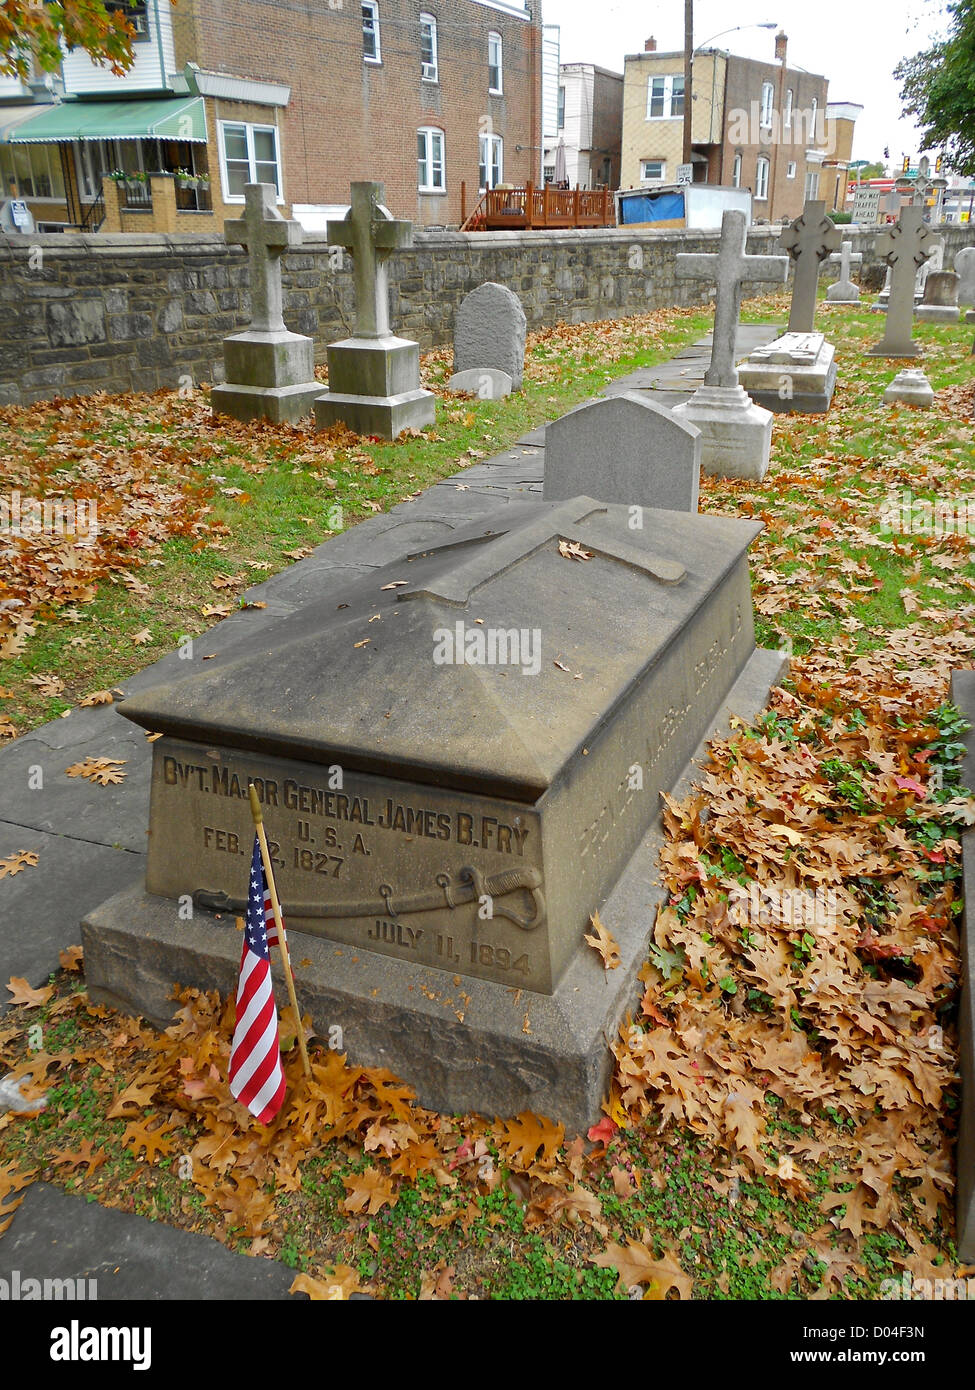 Grave of James Barrett Fry at St. James the Less in Philadelphia. Church of St. James the Less on the NRHP since - Stock Image